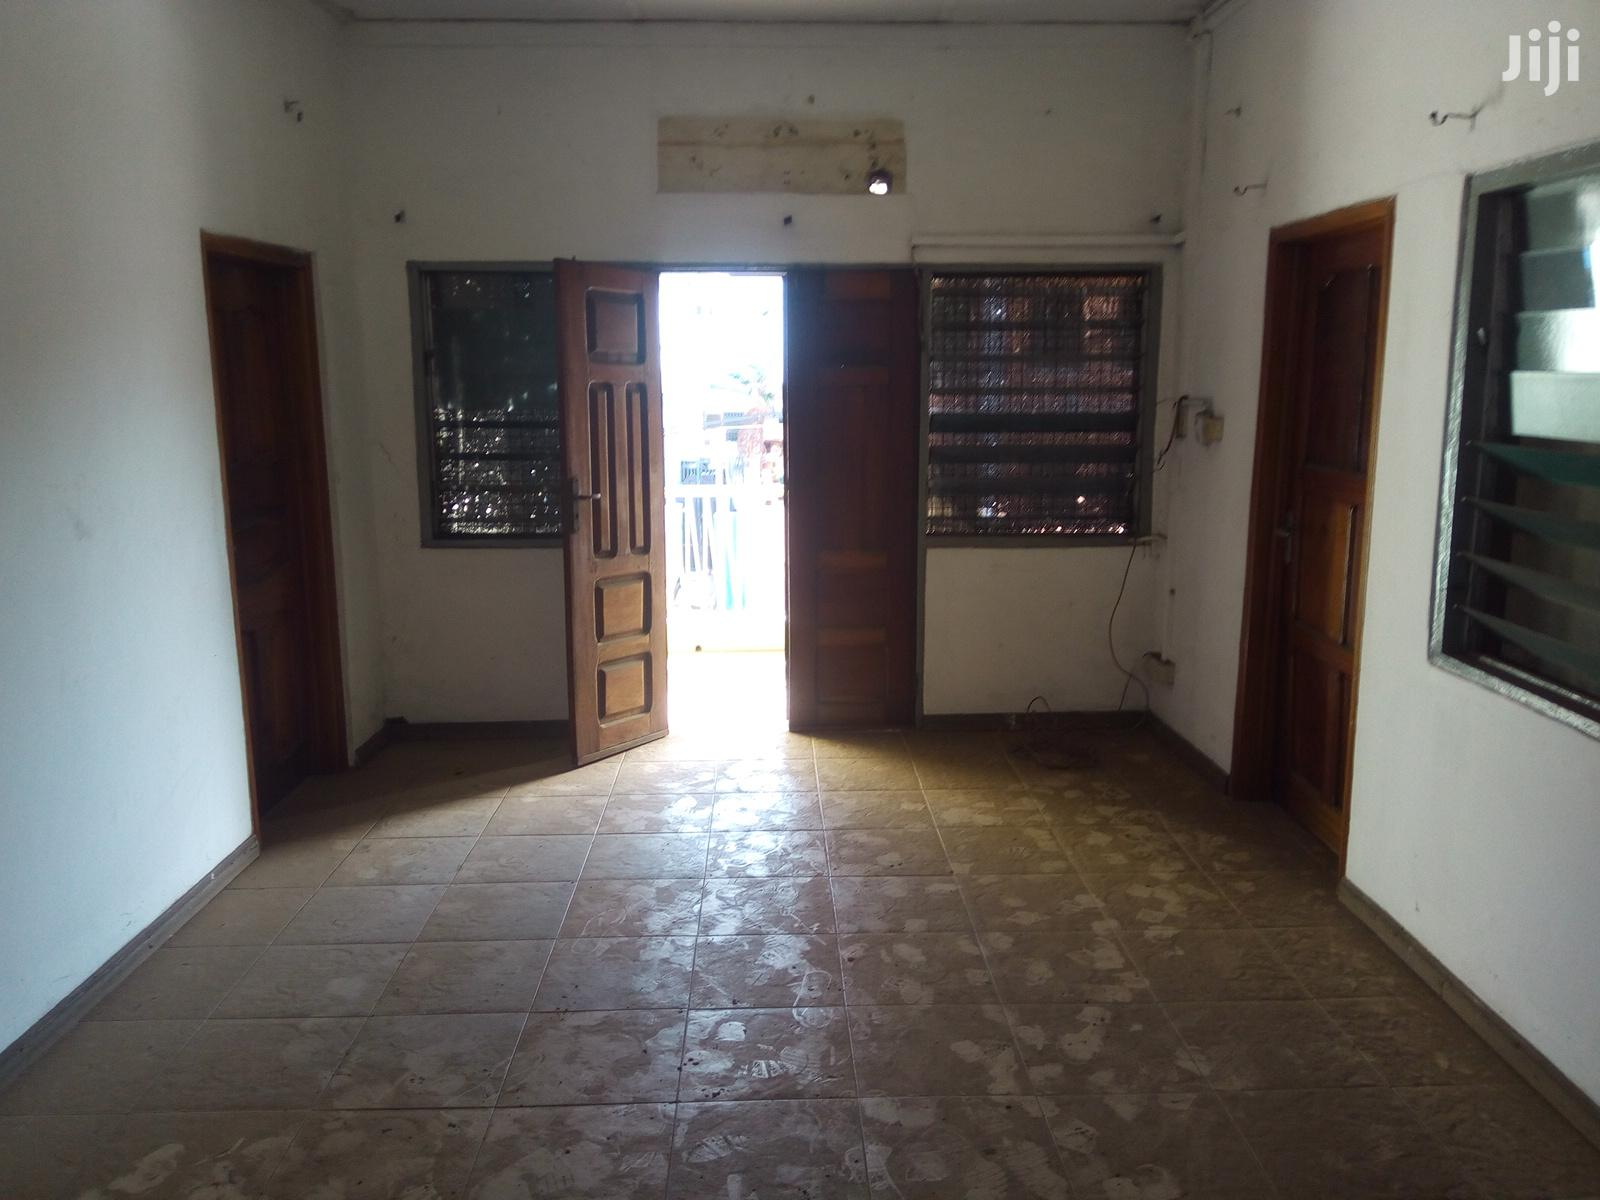 3bedroom Apartment For Rent At Adabraka | Houses & Apartments For Rent for sale in Accra Metropolitan, Greater Accra, Ghana